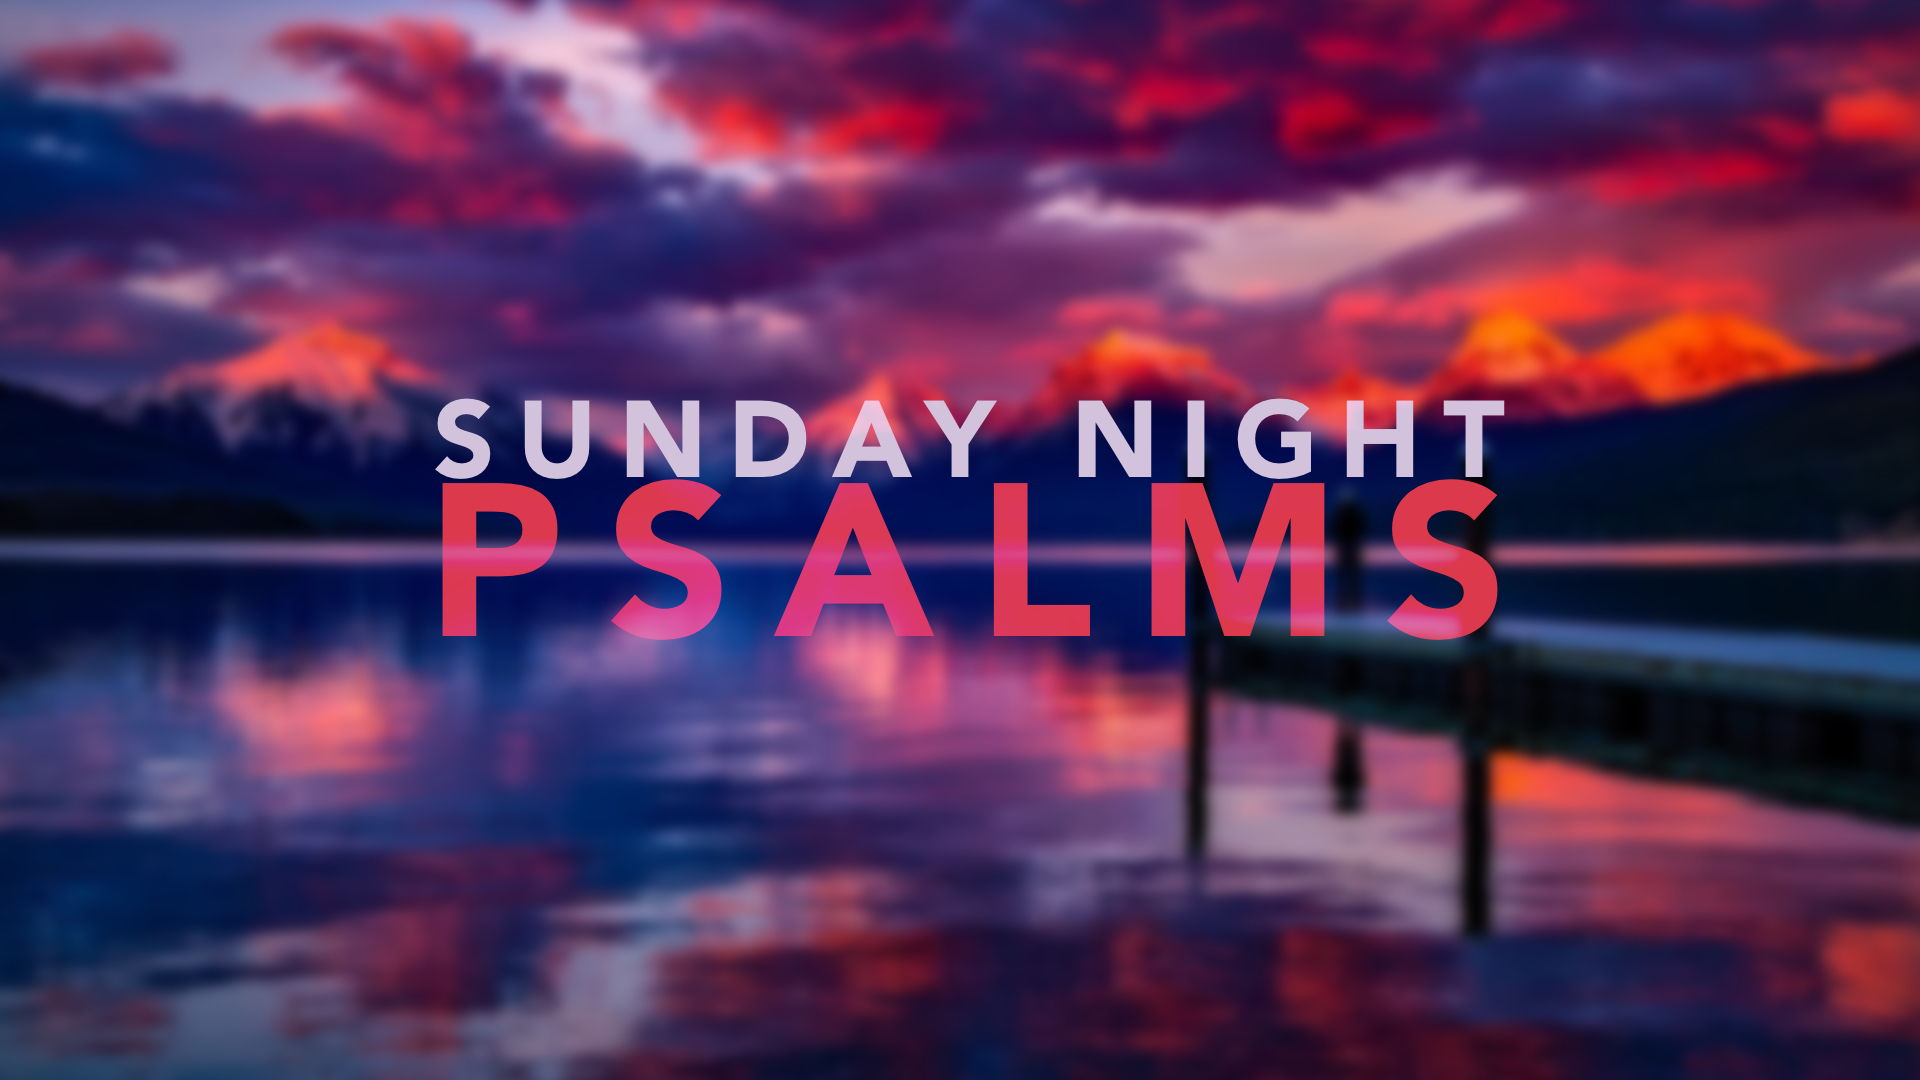 Sunday Night Psalms Series_1920x1080.jpg